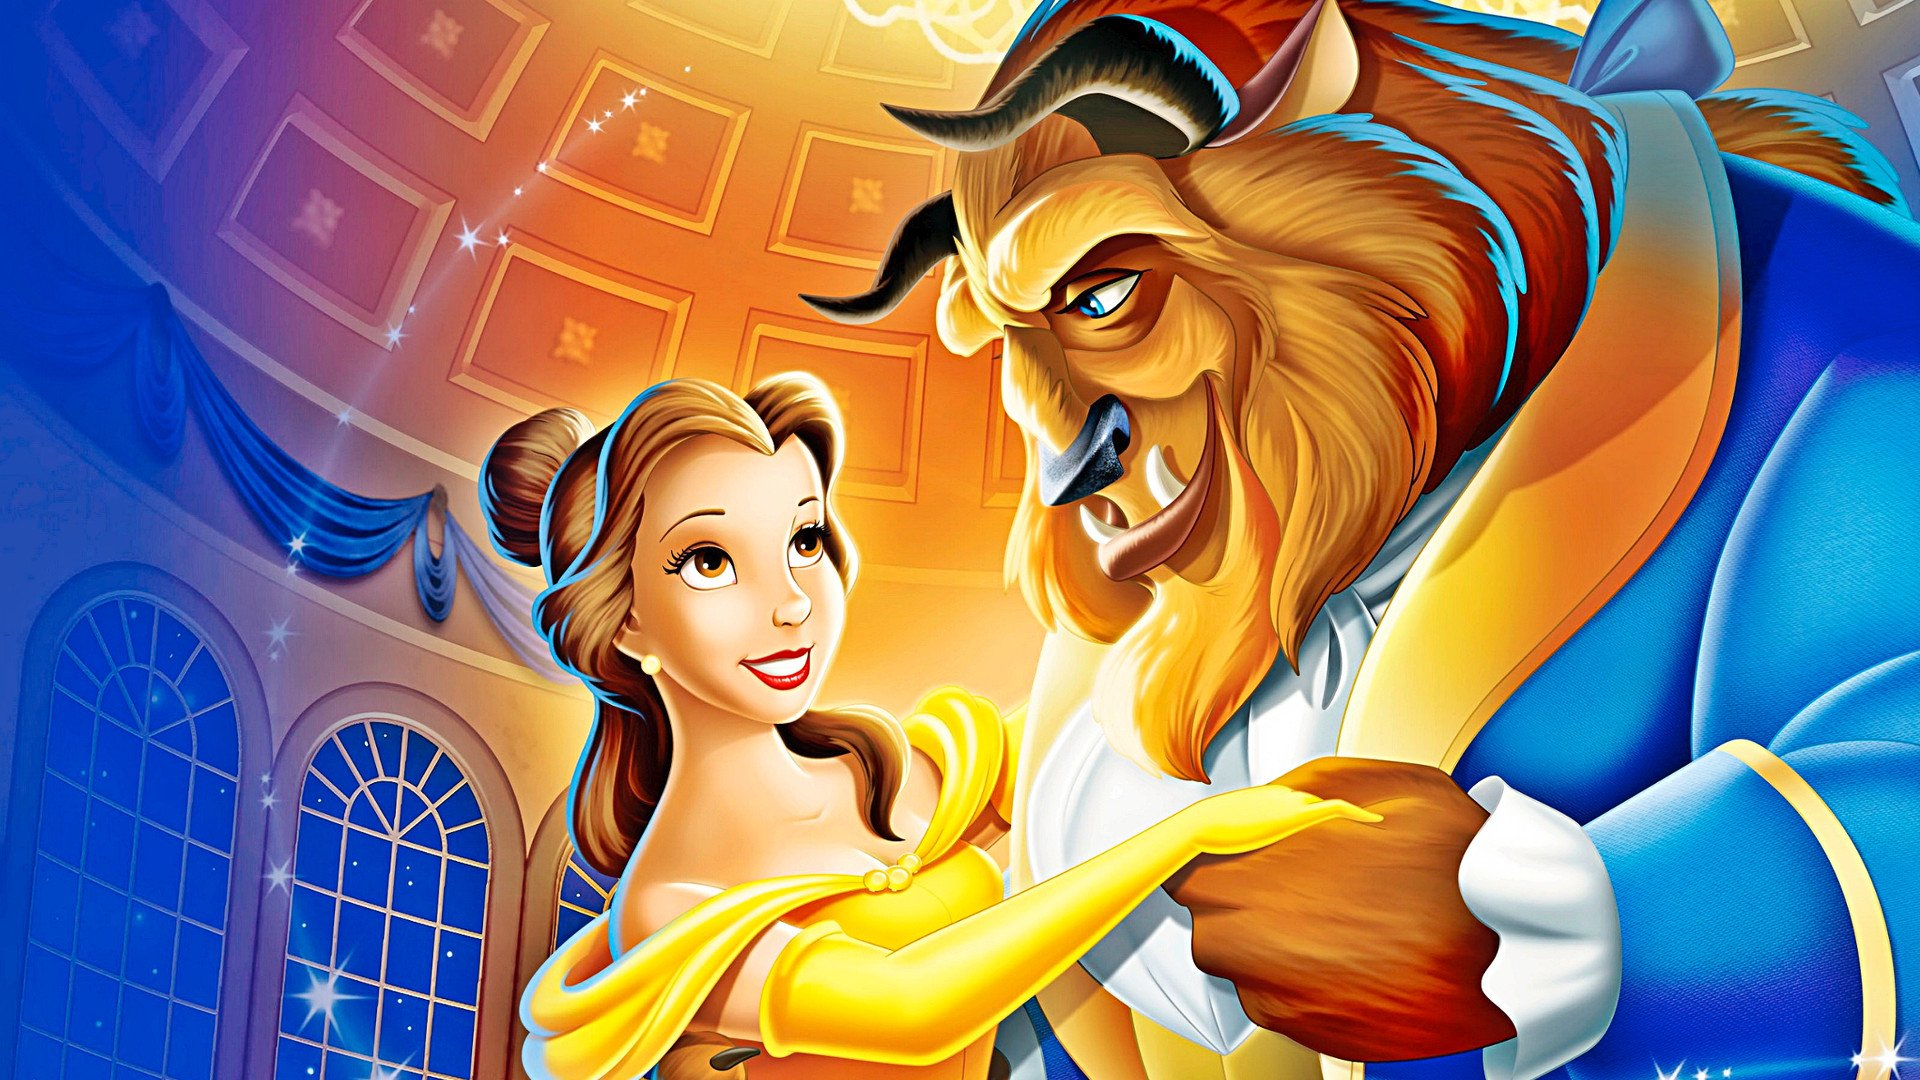 Beauty And The Beast 1991 Hd Wallpaper Background Image